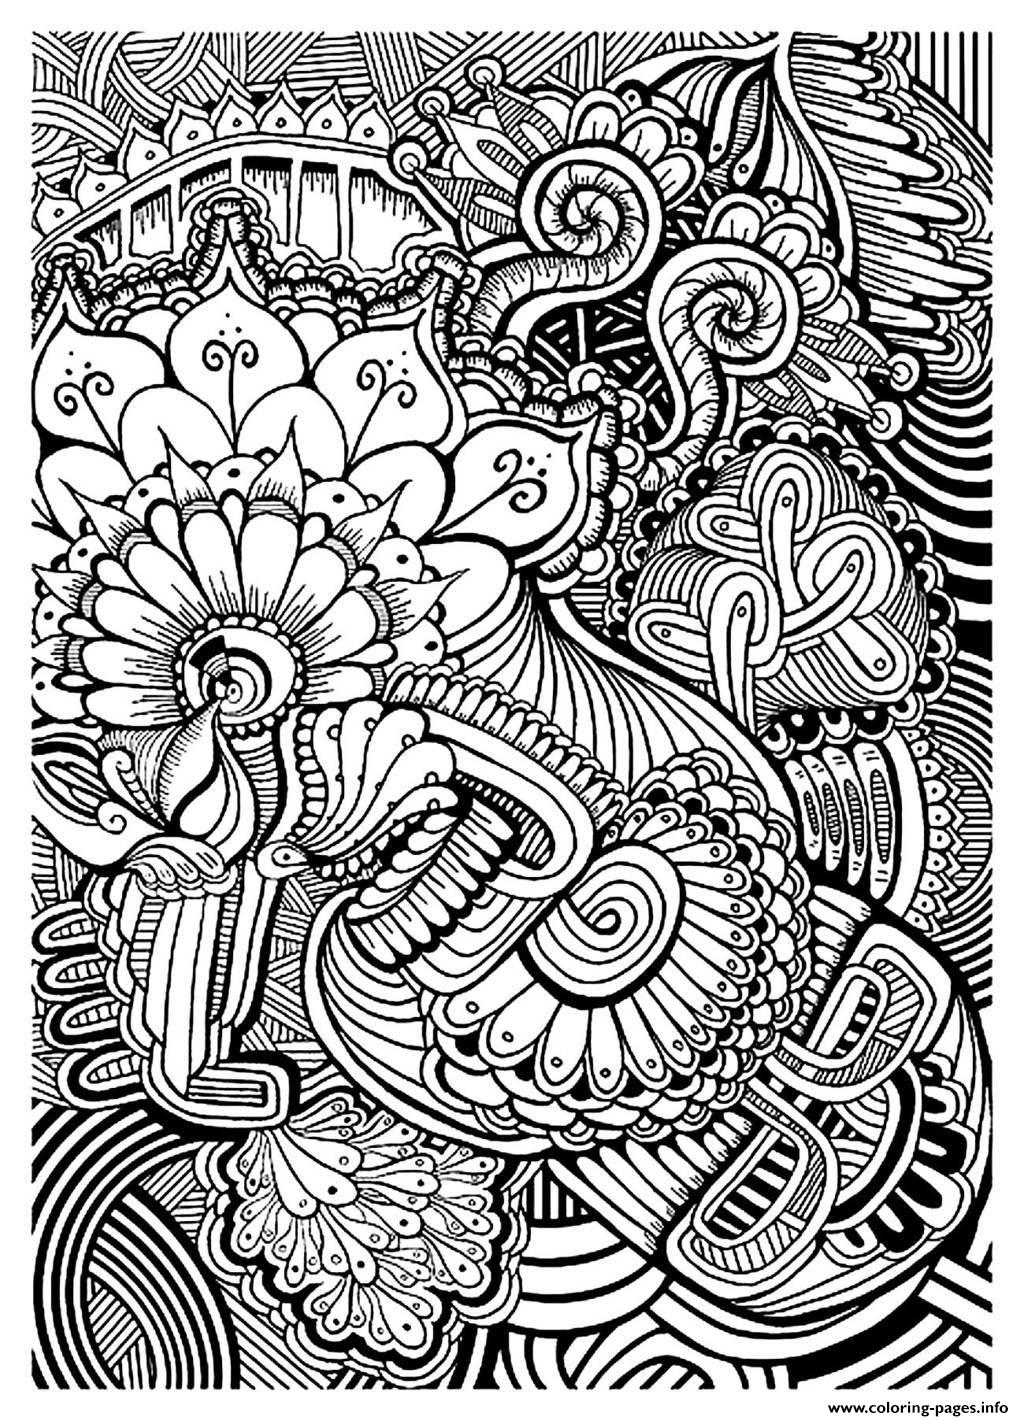 free zen coloring pages zen colors images and coloring sheets learning printable coloring pages zen free